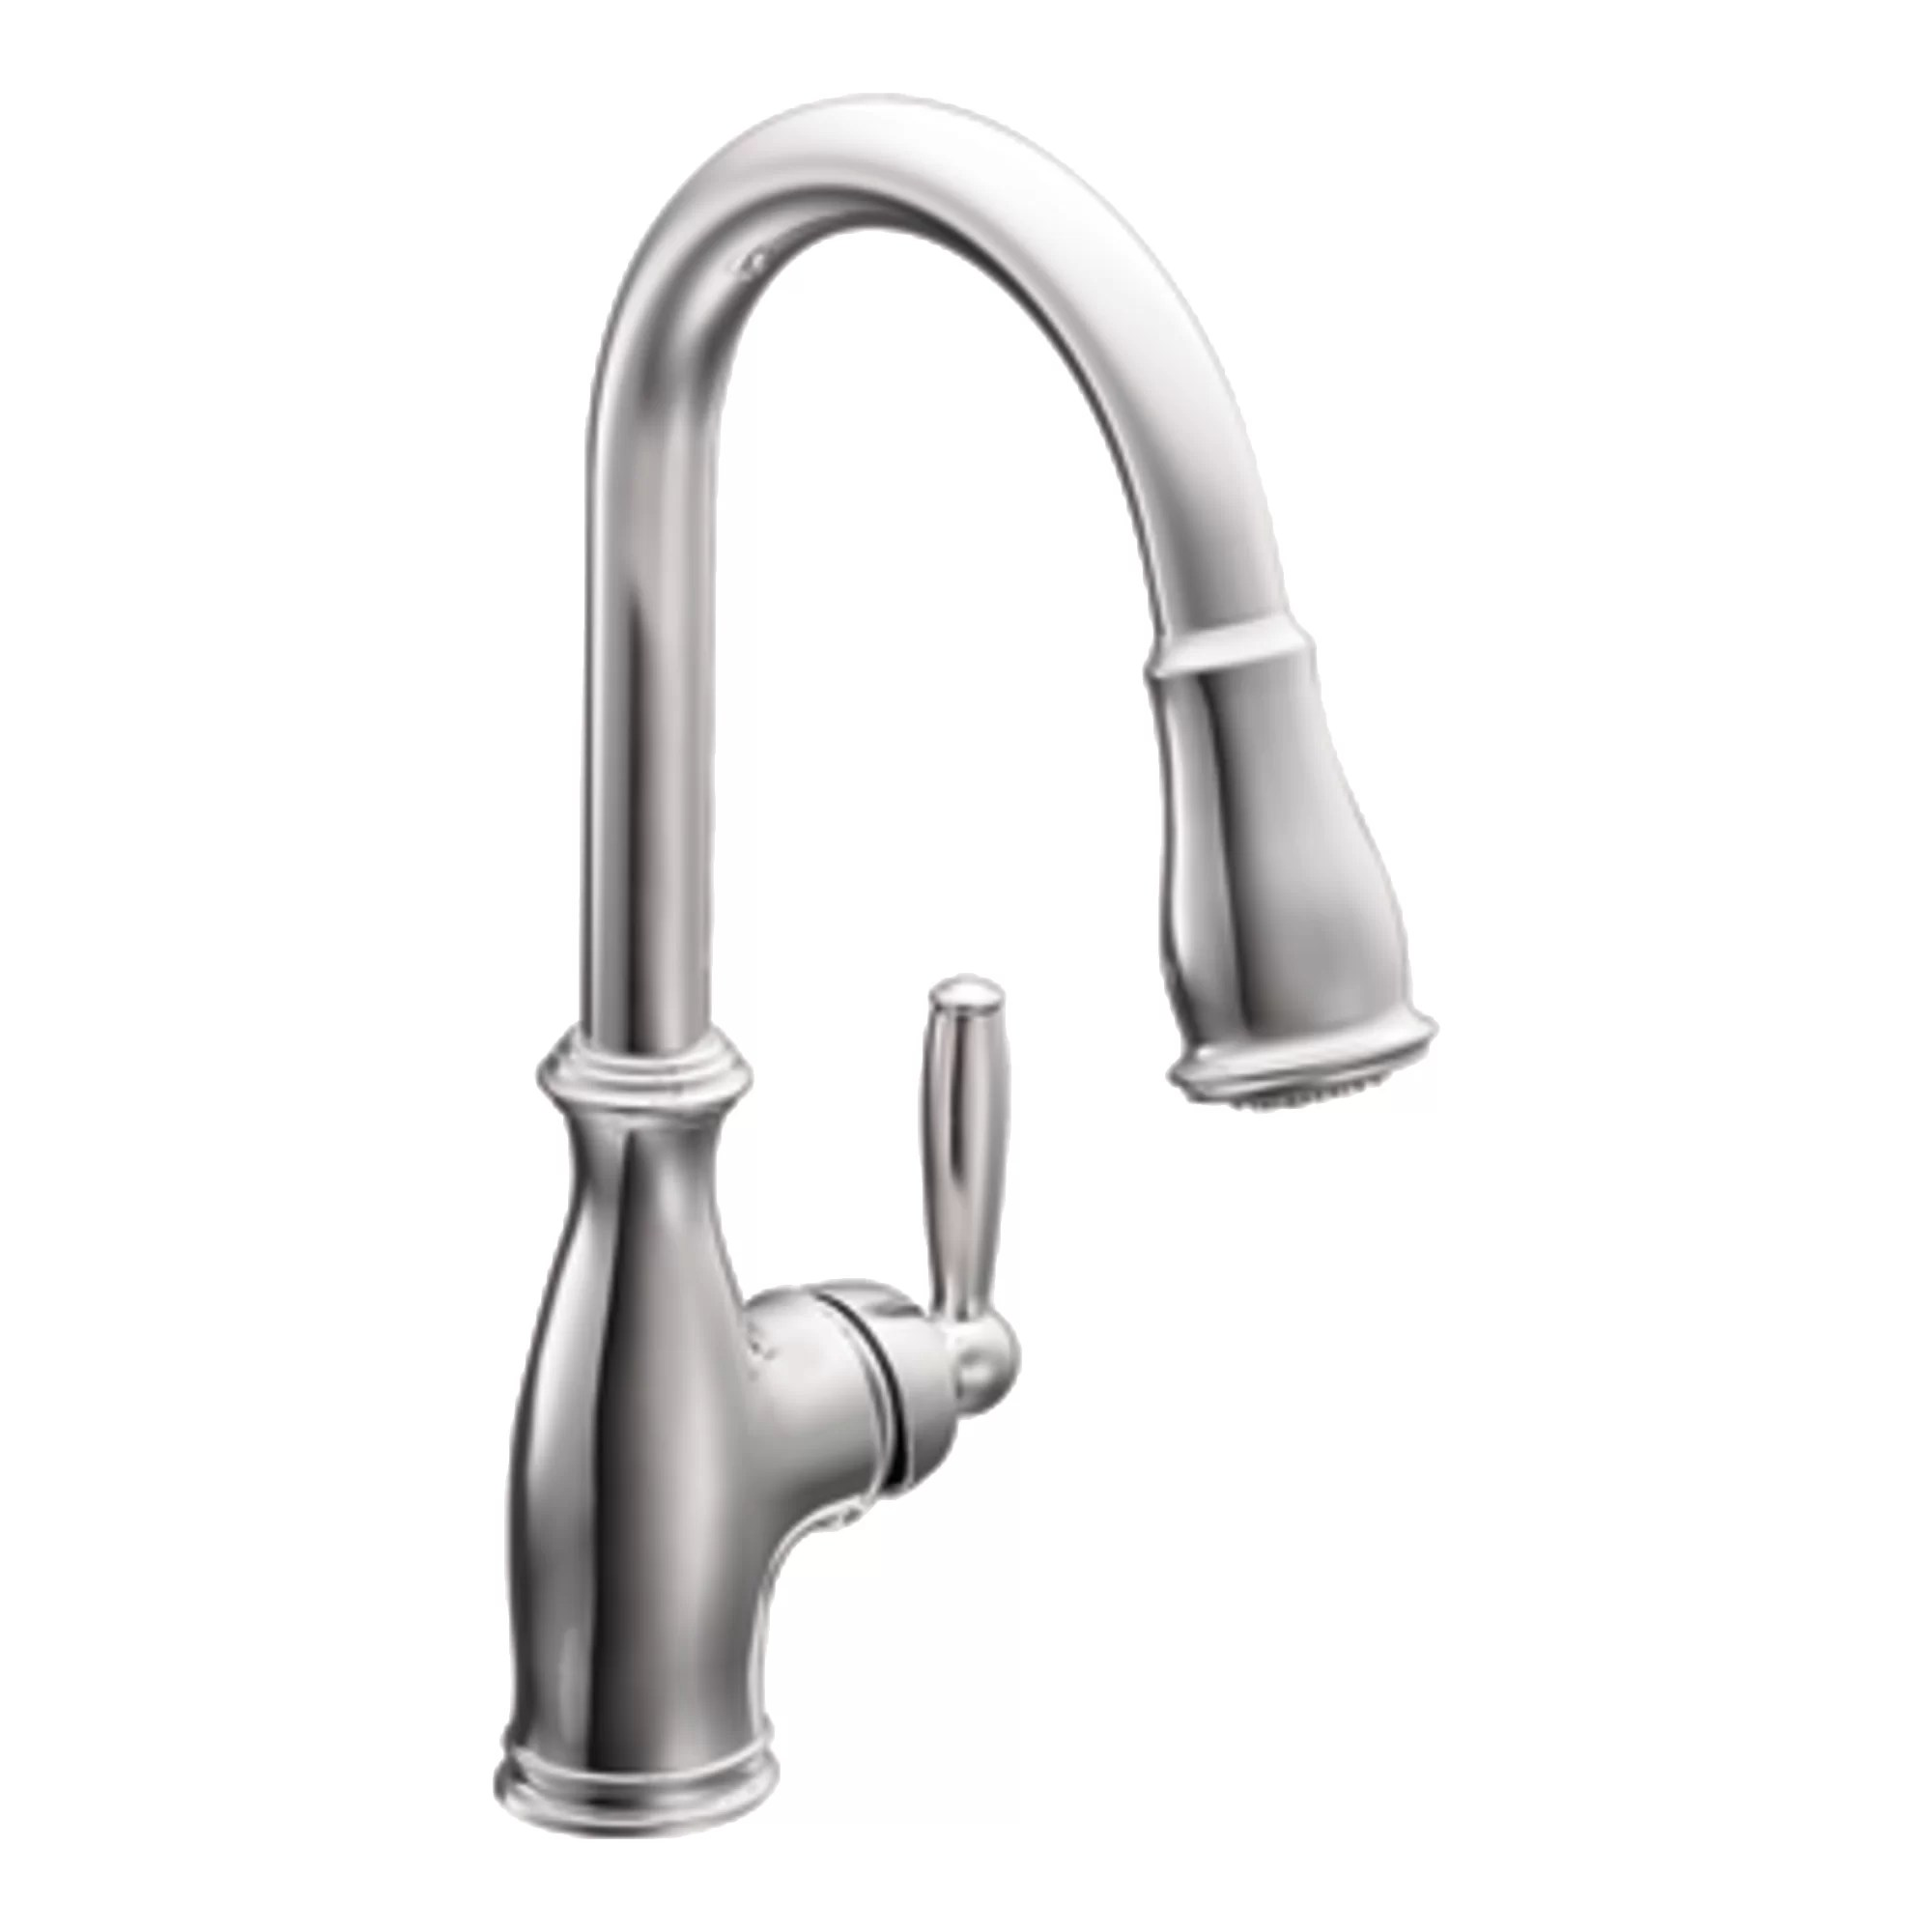 moen hands free kitchen faucet best cabinets for the money brantford single handle and reviews